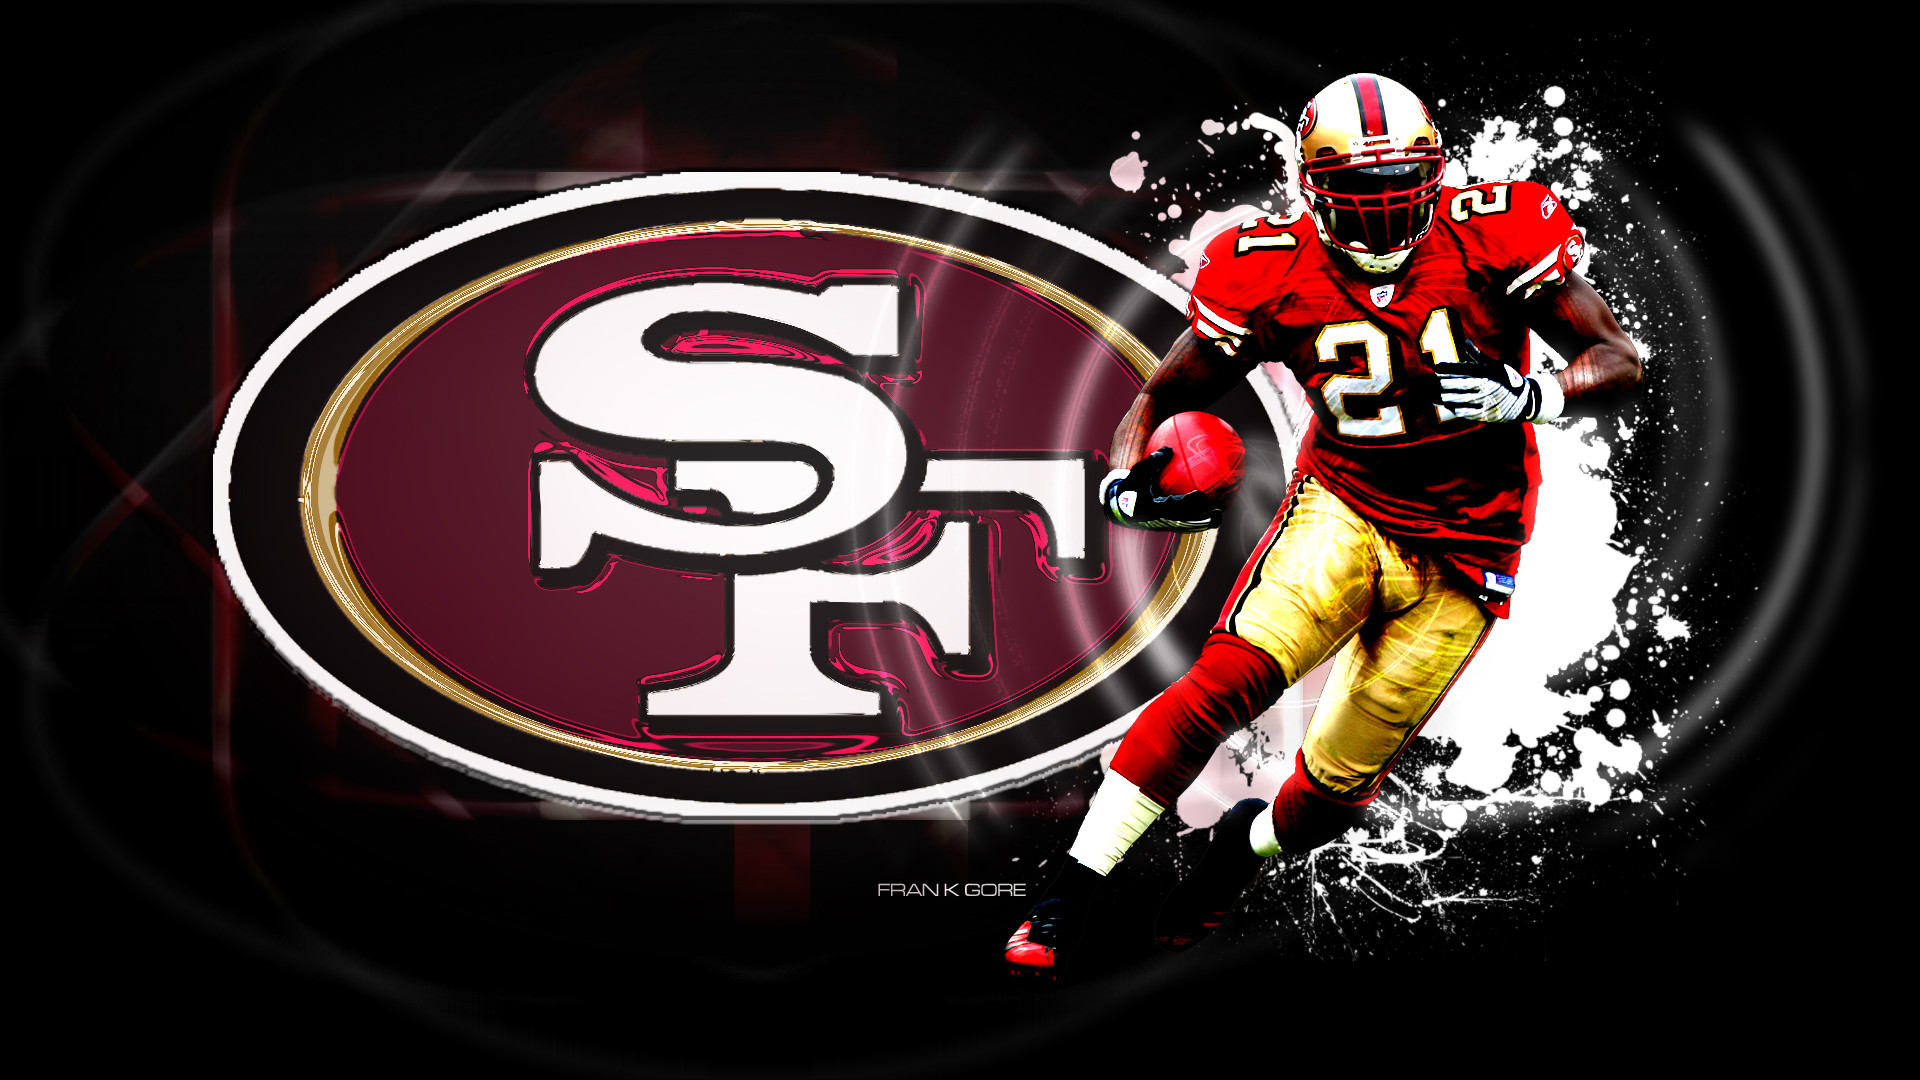 49ers wallpaper wednesday 2560x1440 49ers backgrounds hd wednesday desktop wallpapers high definition cool free best windows apple picture 25601440 wallpaper hd voltagebd Image collections